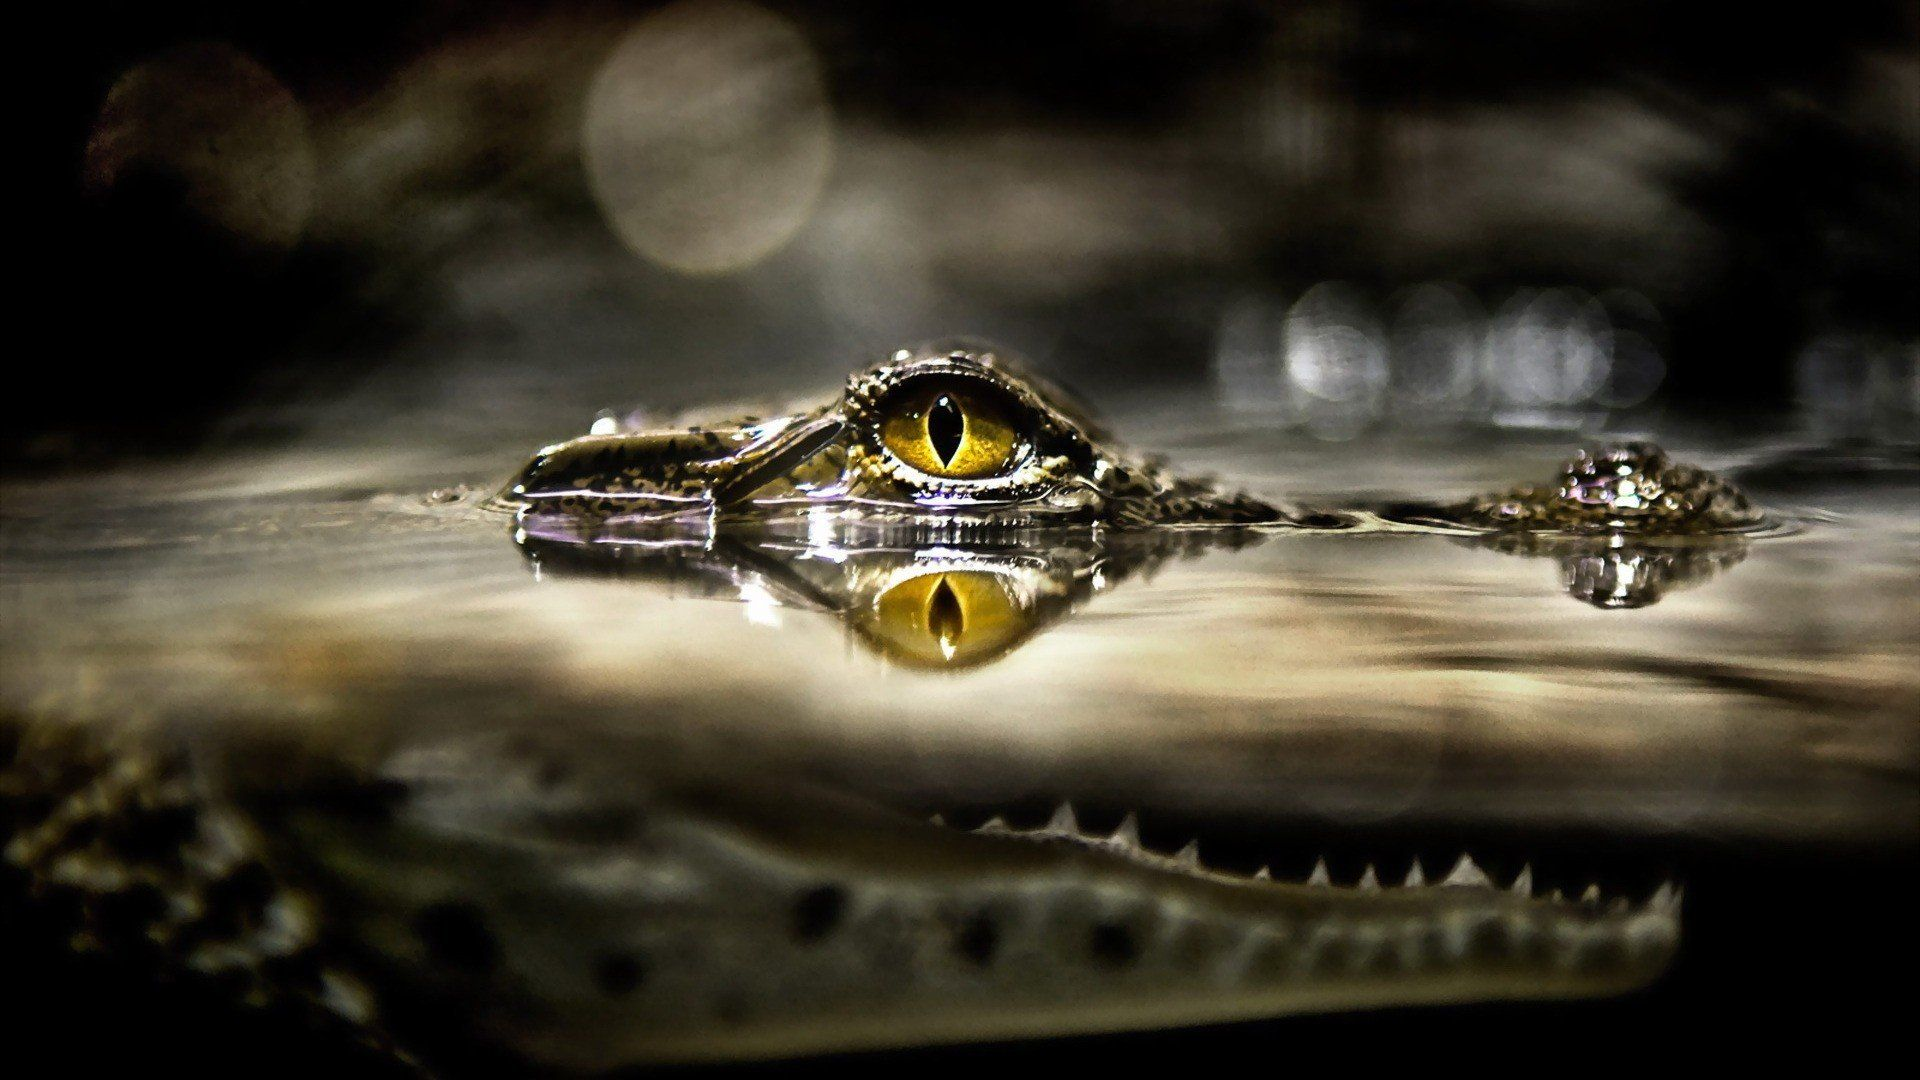 Crocodile Eyes Out Of The Water